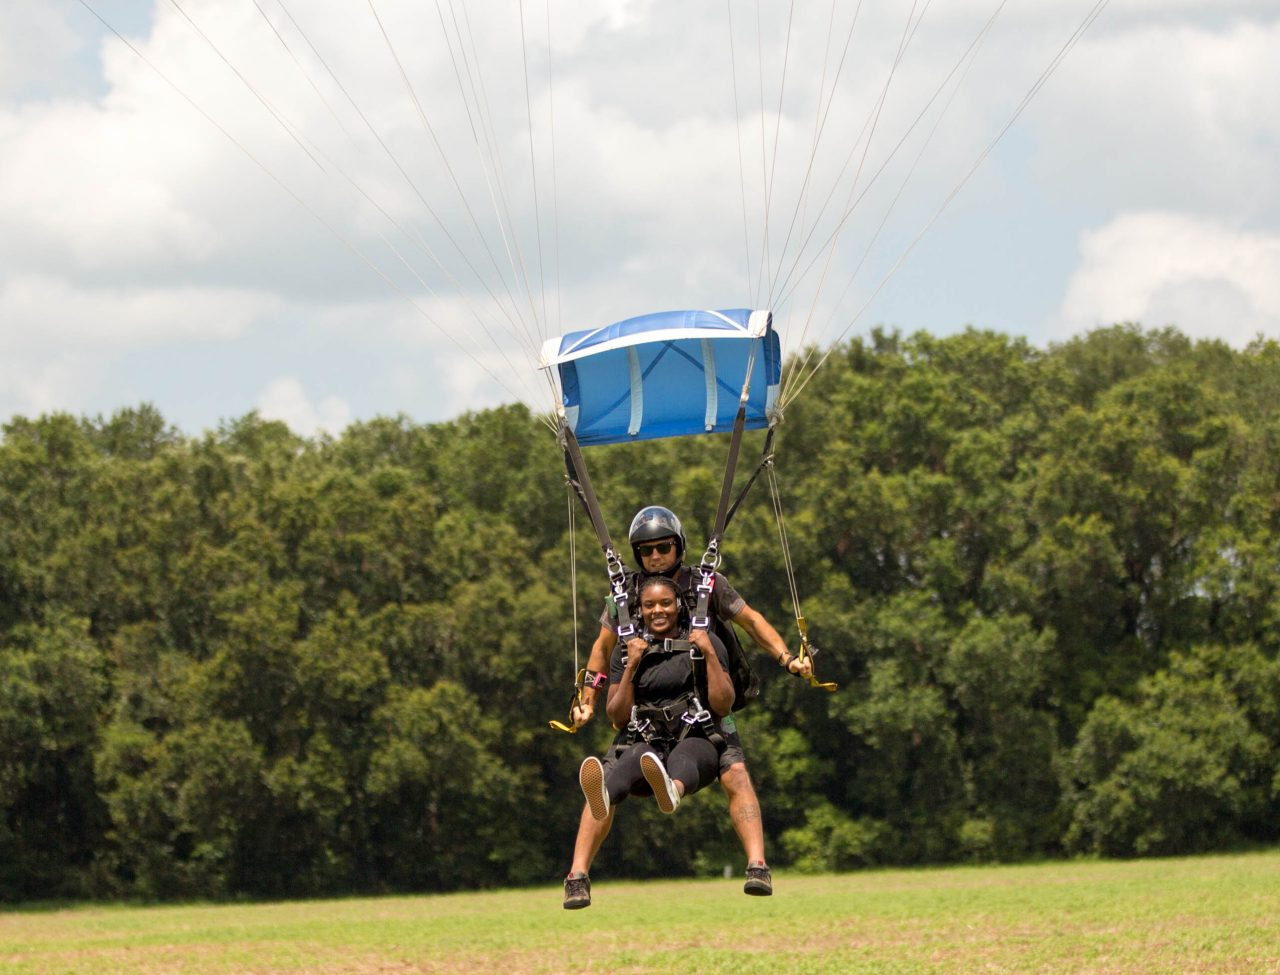 young women comes in for landing after an awesome skydive with a skydive the gulf tandem instructor